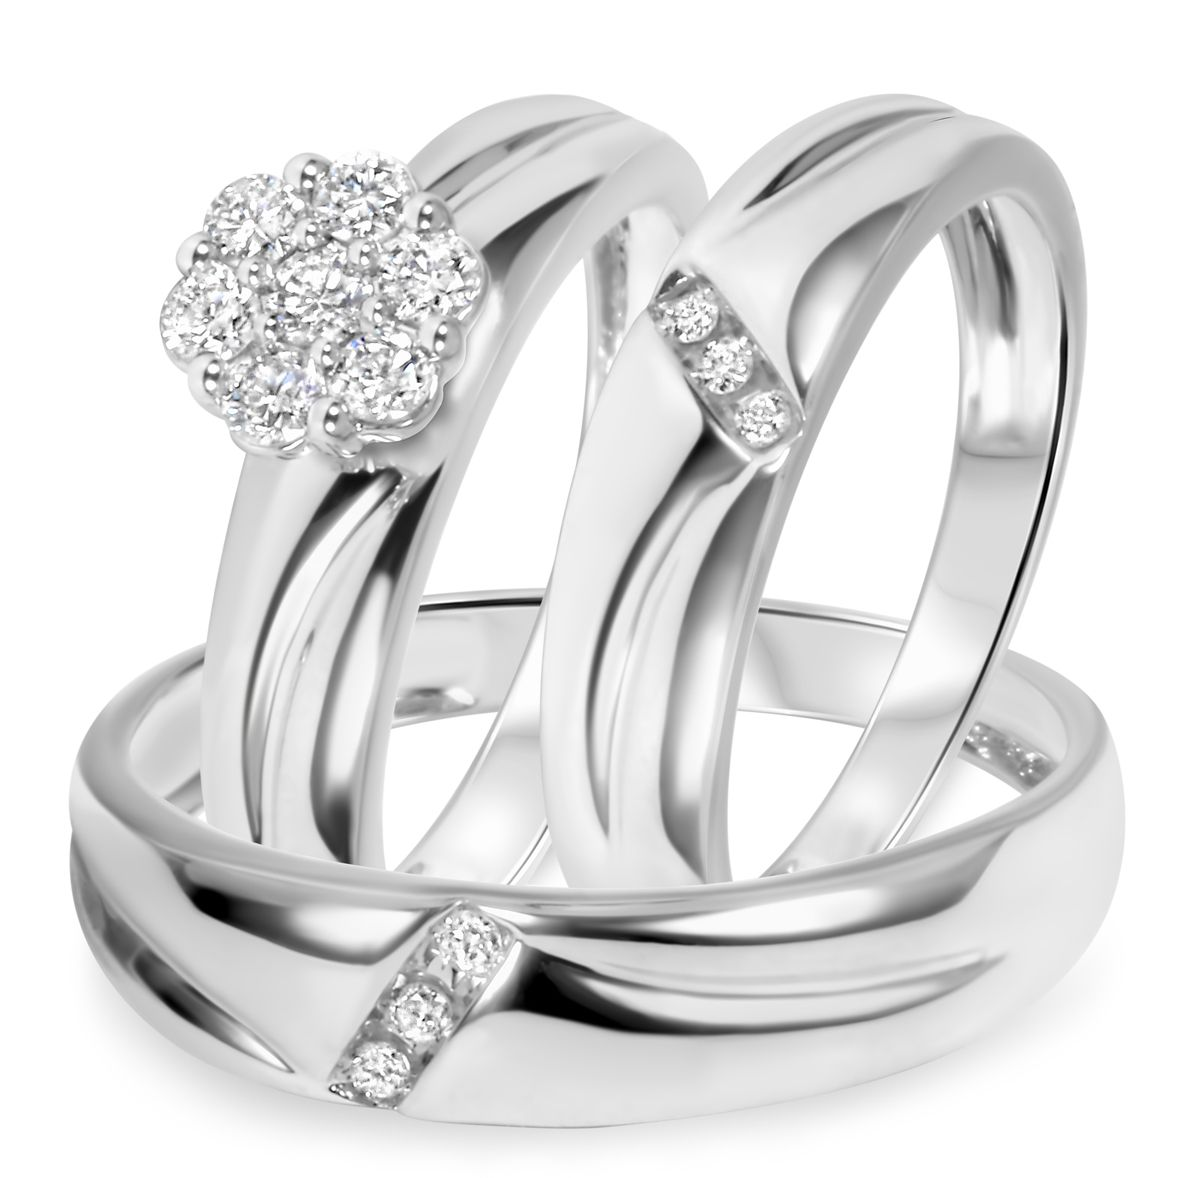 Diamond Trio Set His Hers Matching Engagement Ring Wedding Band White Gold